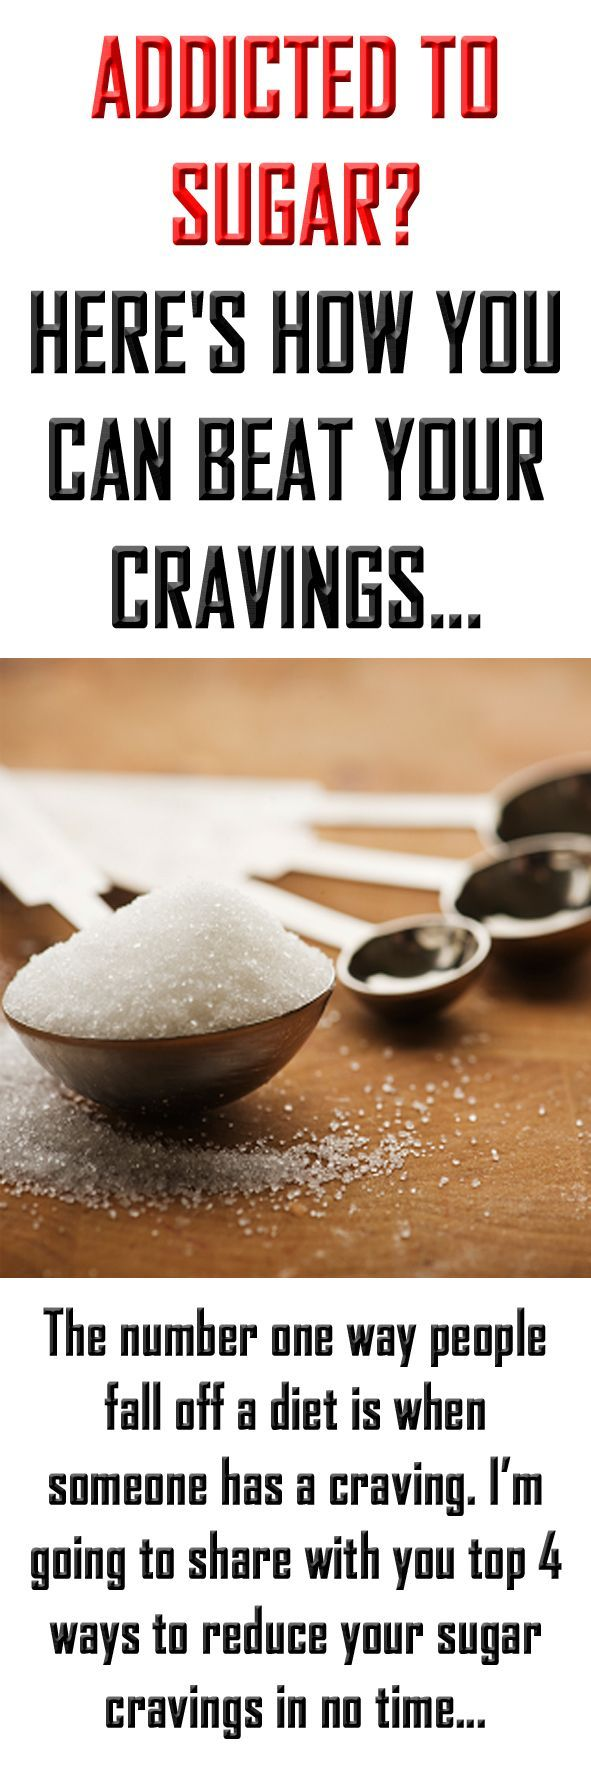 Beat the craving=Drink Javita's Control or Lean & green tea www.myjavita.com/drinkskinnycoffee